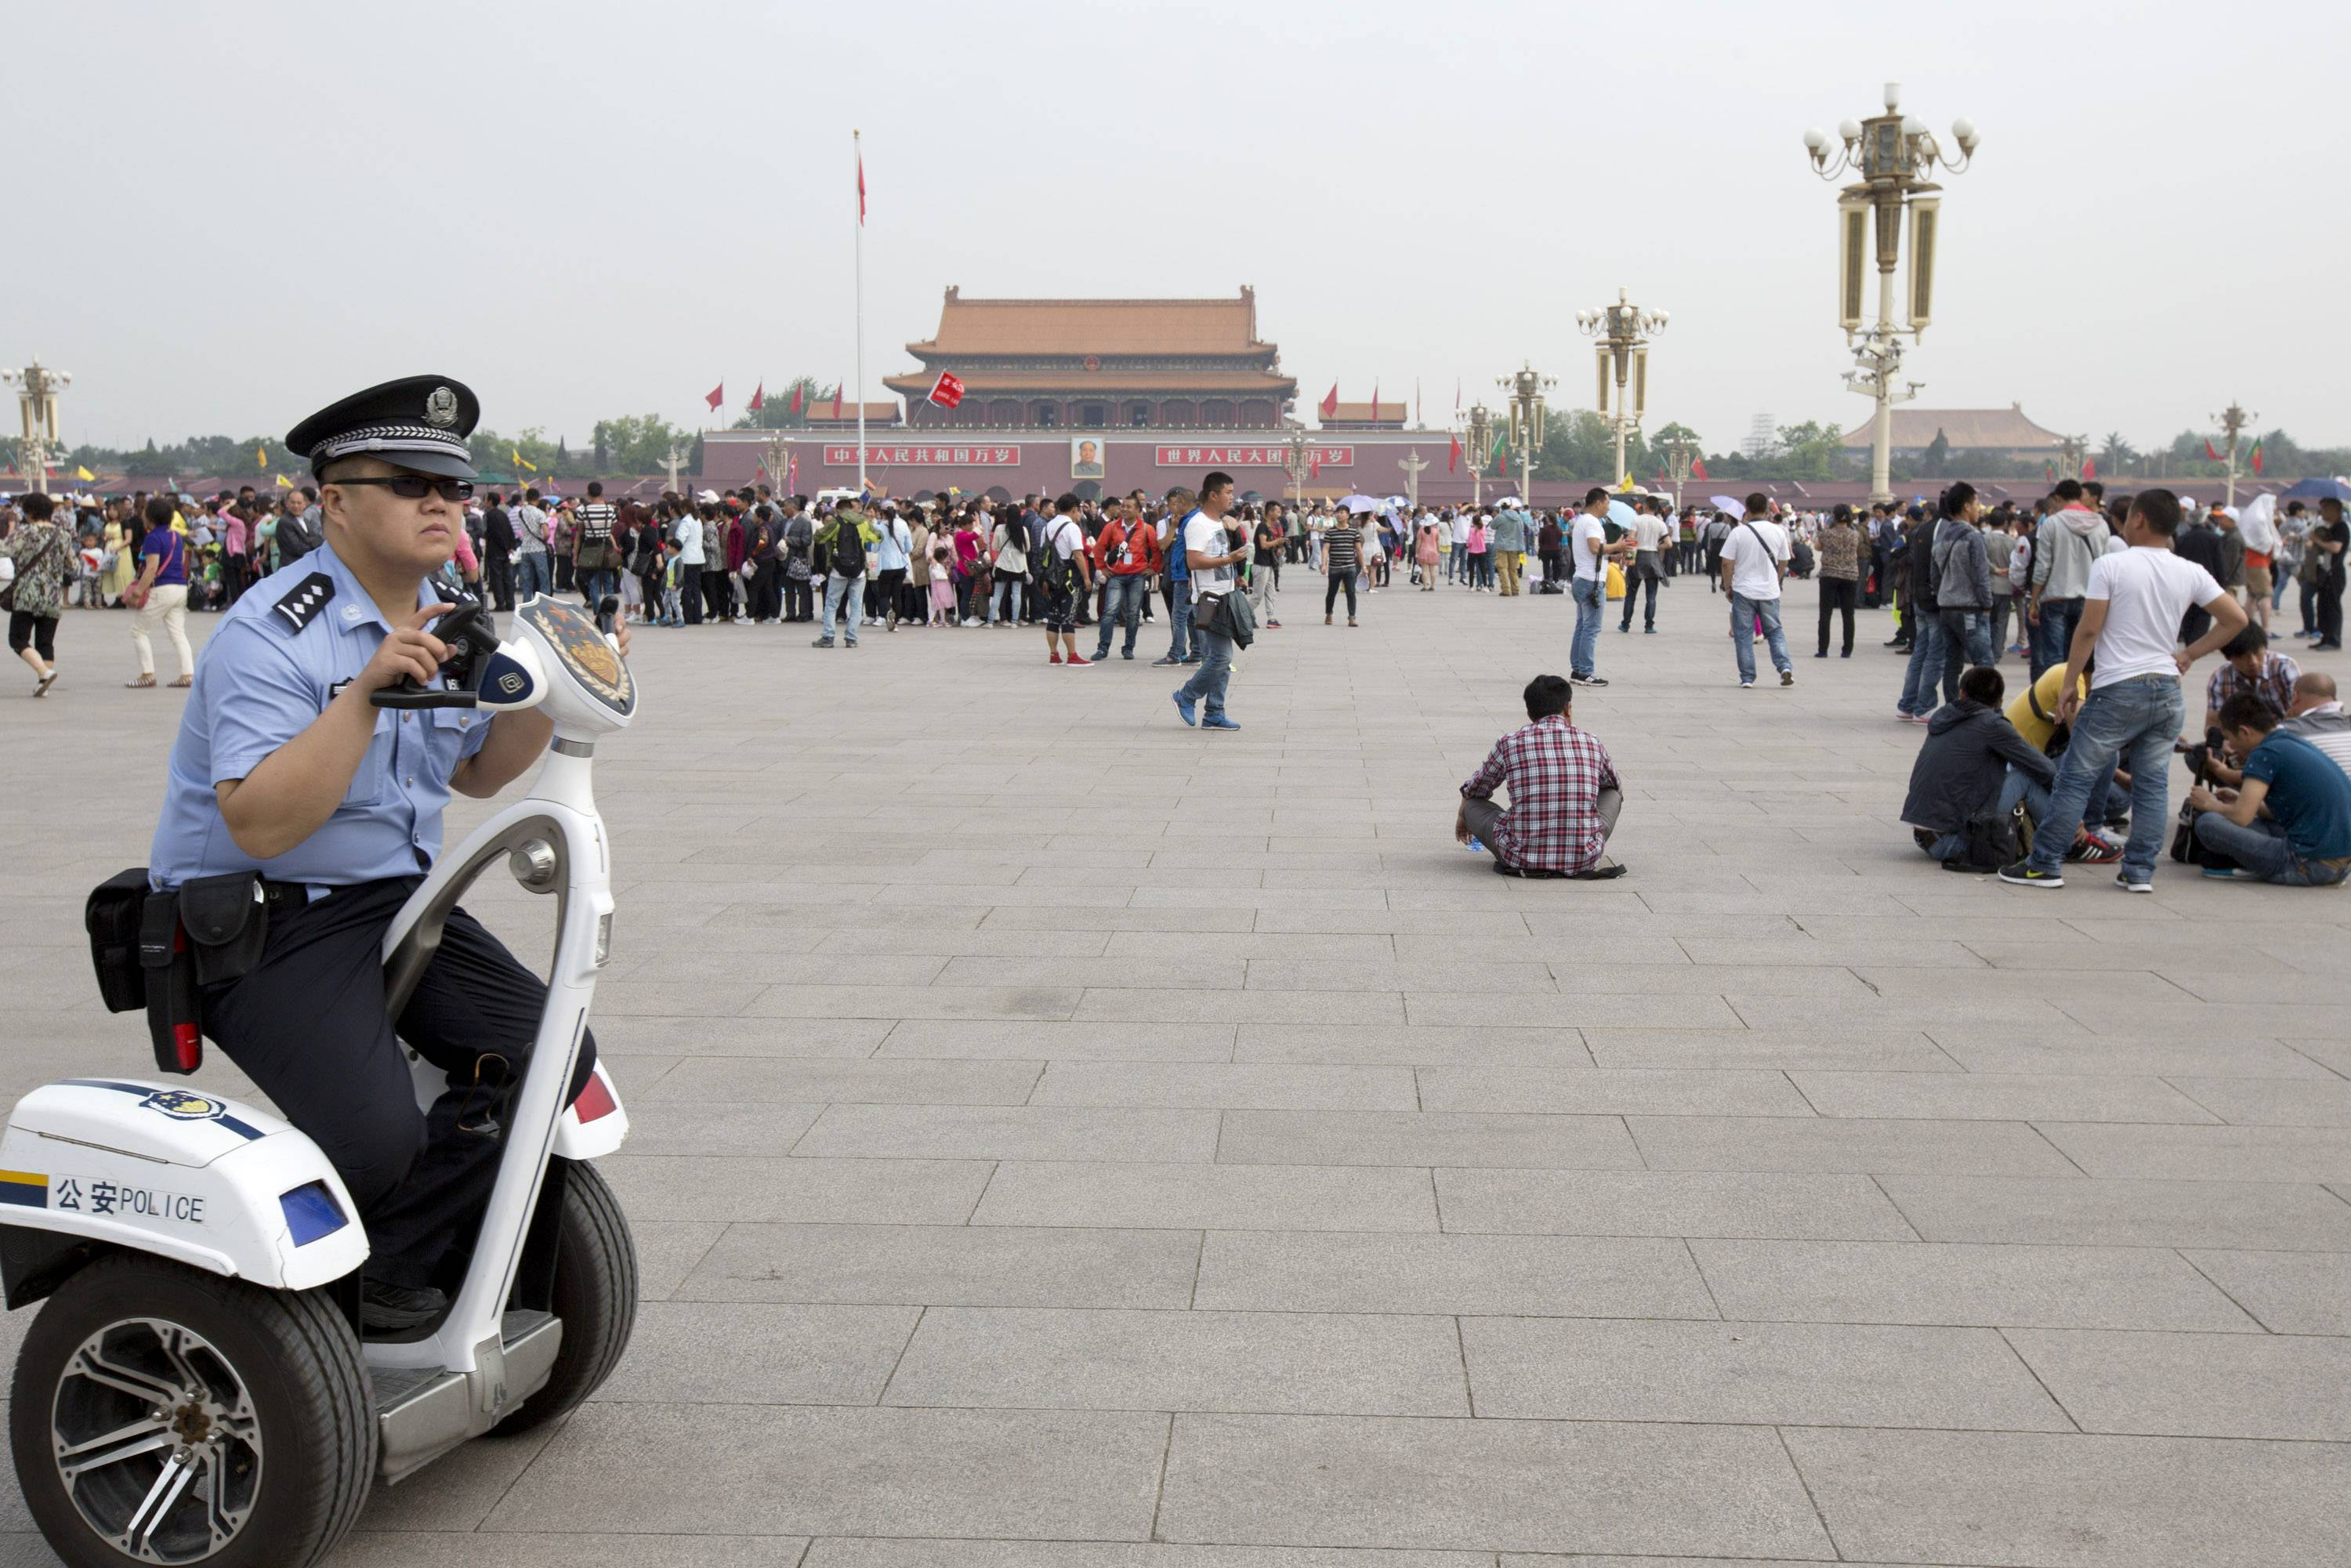 A policeman patrols on an electric personal transporter on Tiananmen Square in Beijing. A quarter century after the TiananmenSquare pro-democracy movement's suppression, China's communist authorities oversee a raft of measures for muzzling dissent and preventing protests.